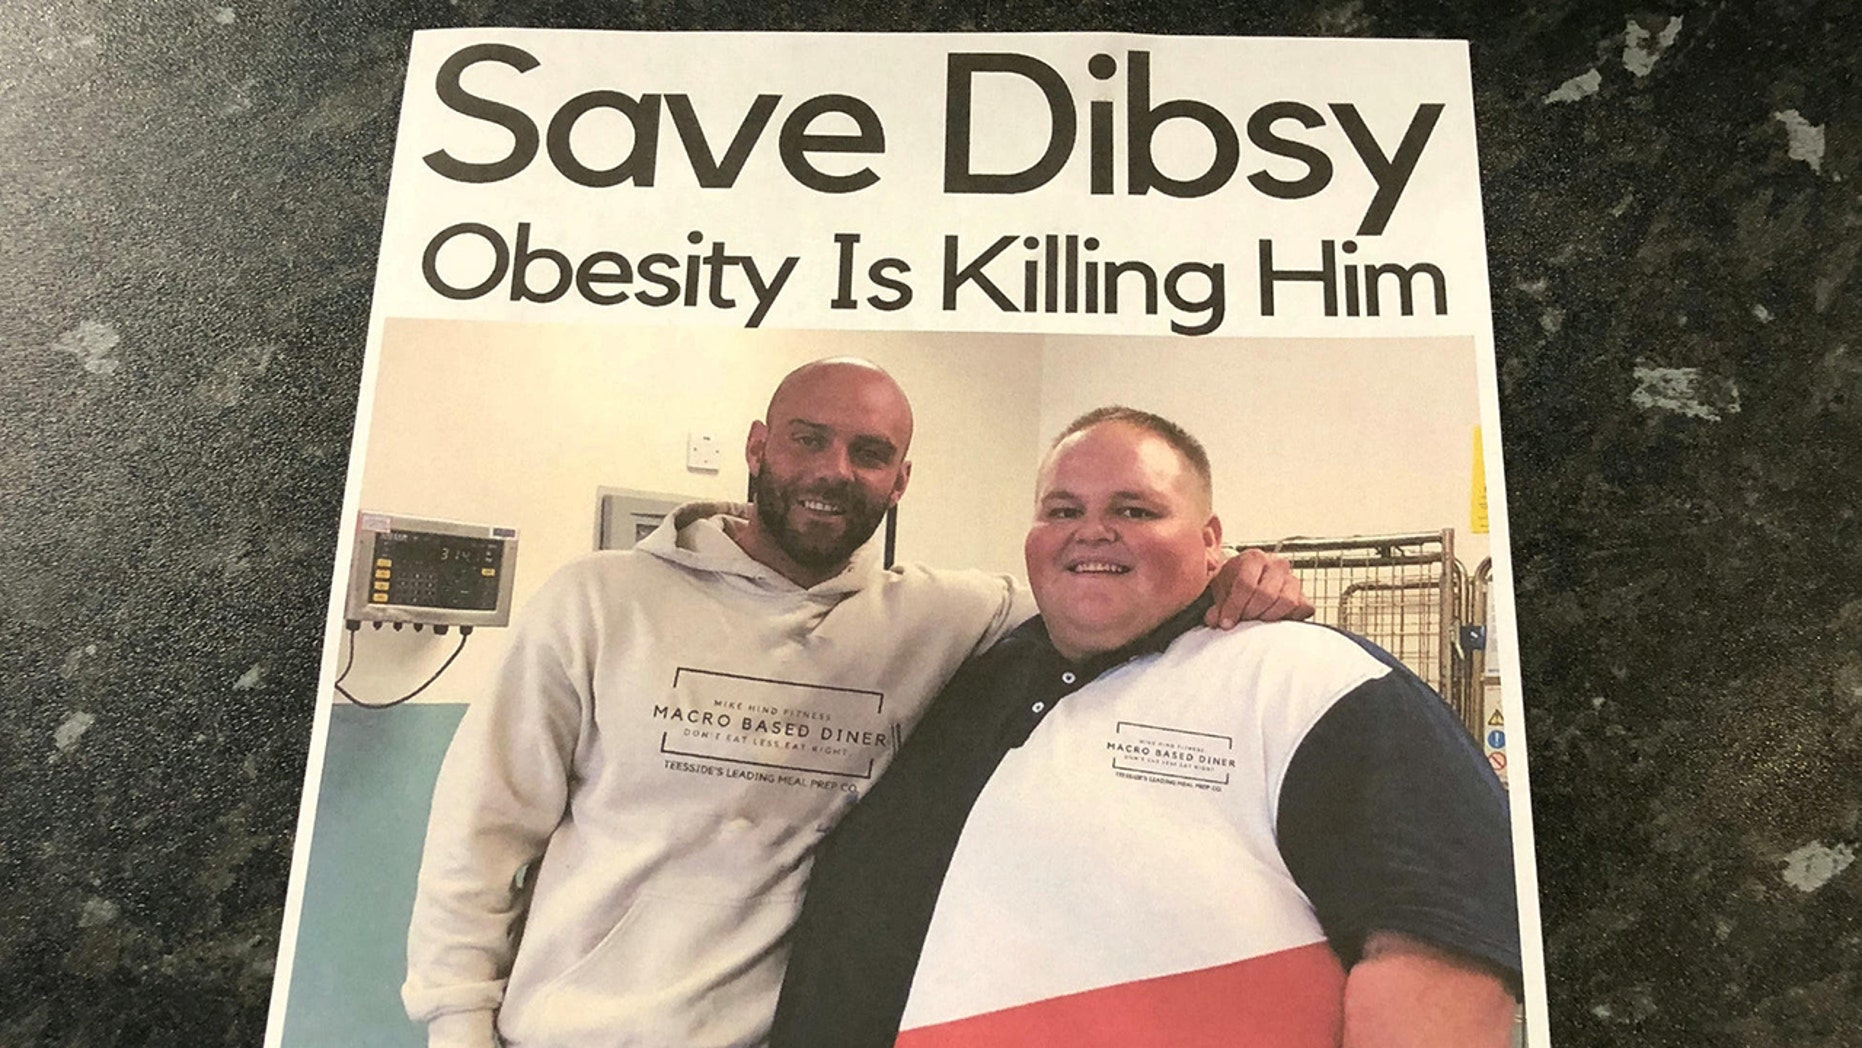 Darren McClintock, also known as Dibsy, went around with his trainer handing out flyers.